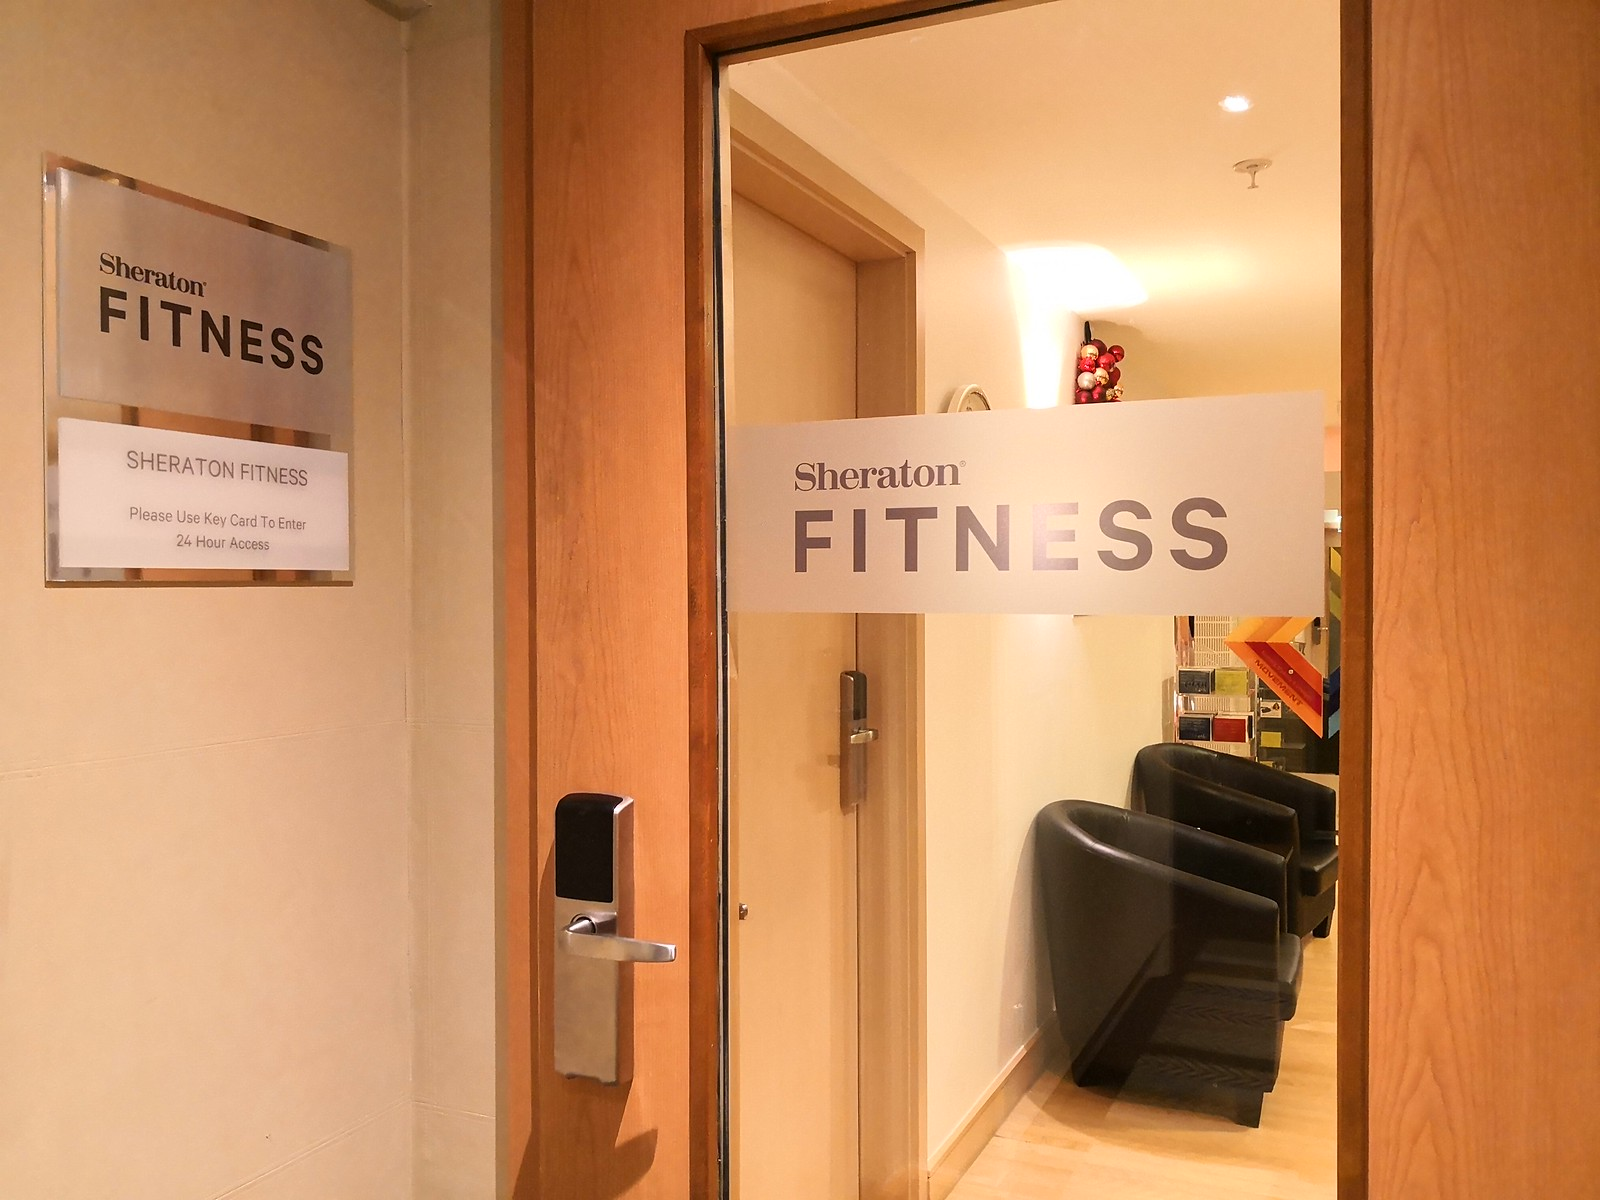 Fitness centre entrance